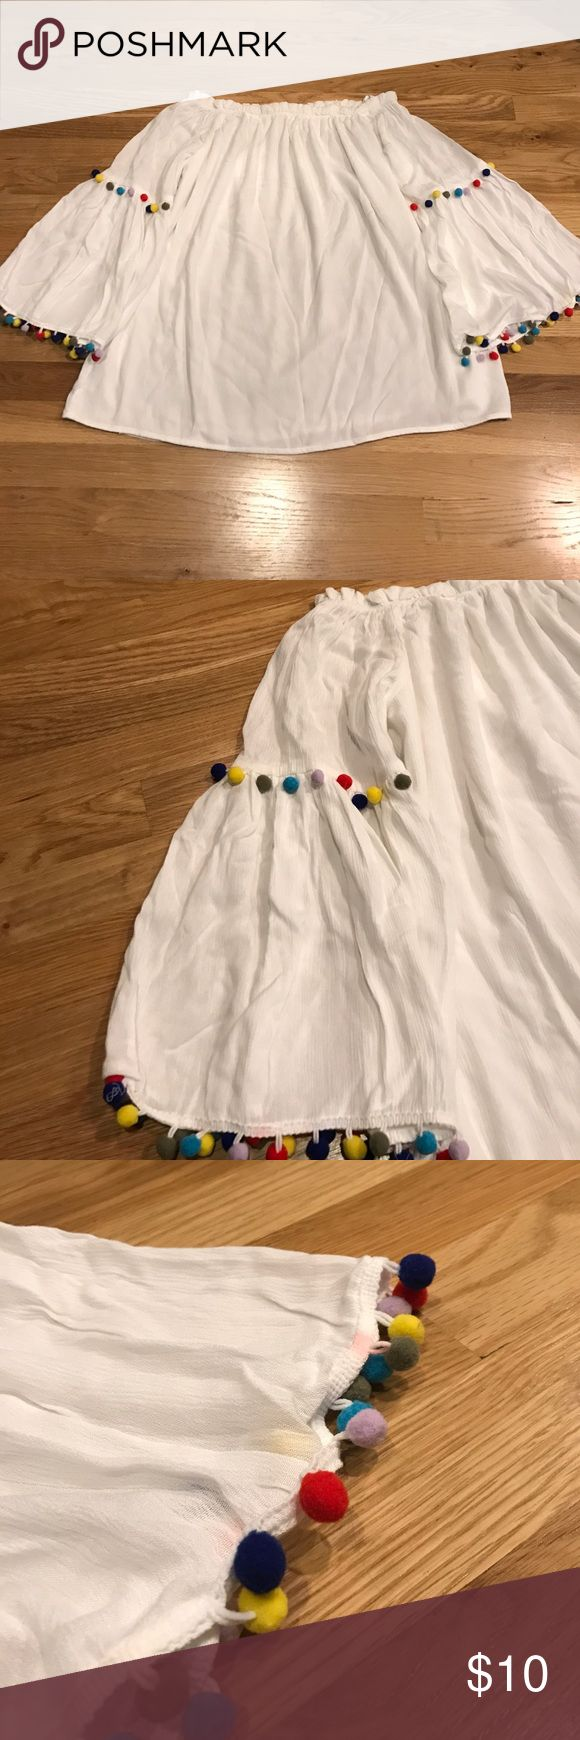 Off the Shoulder Pom Pom Shirt Size small off the shoulder top. Never worn, just didn't fit me! There is a small pink stain on the sleeve shown in the last picture. I received it from the store with that on it. Tops Blouses